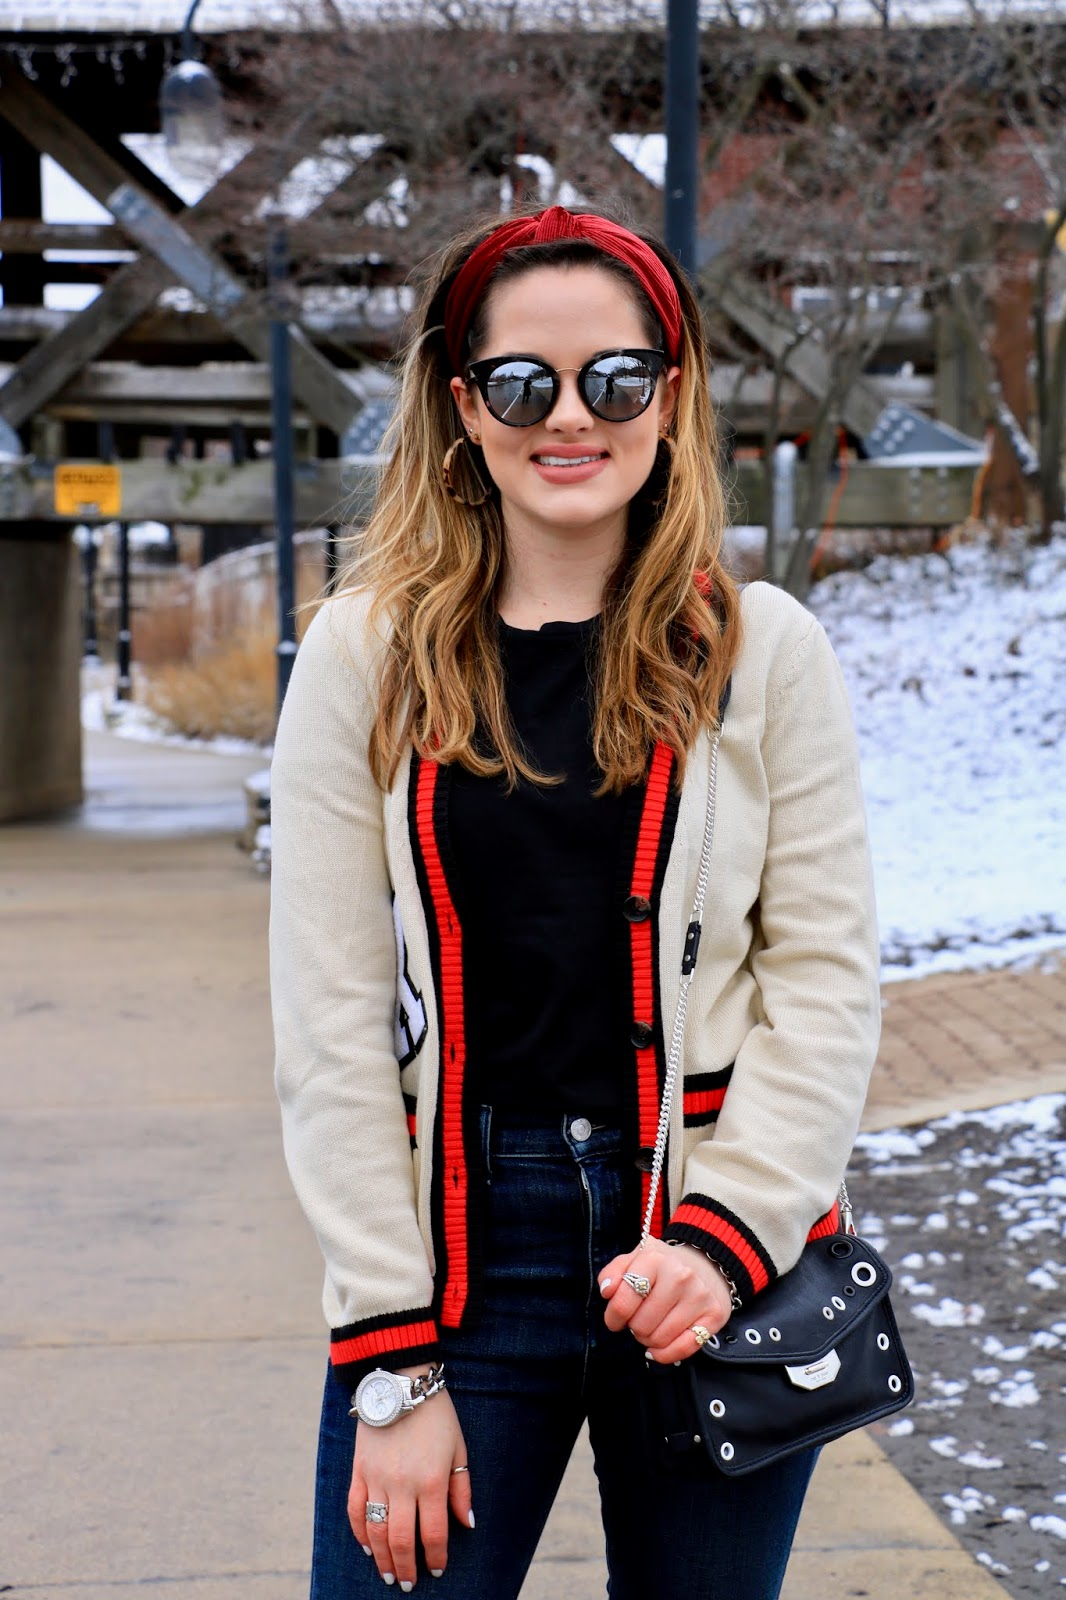 Nyc fashion blogger Kathleen Harper showing how to style a plain black tee